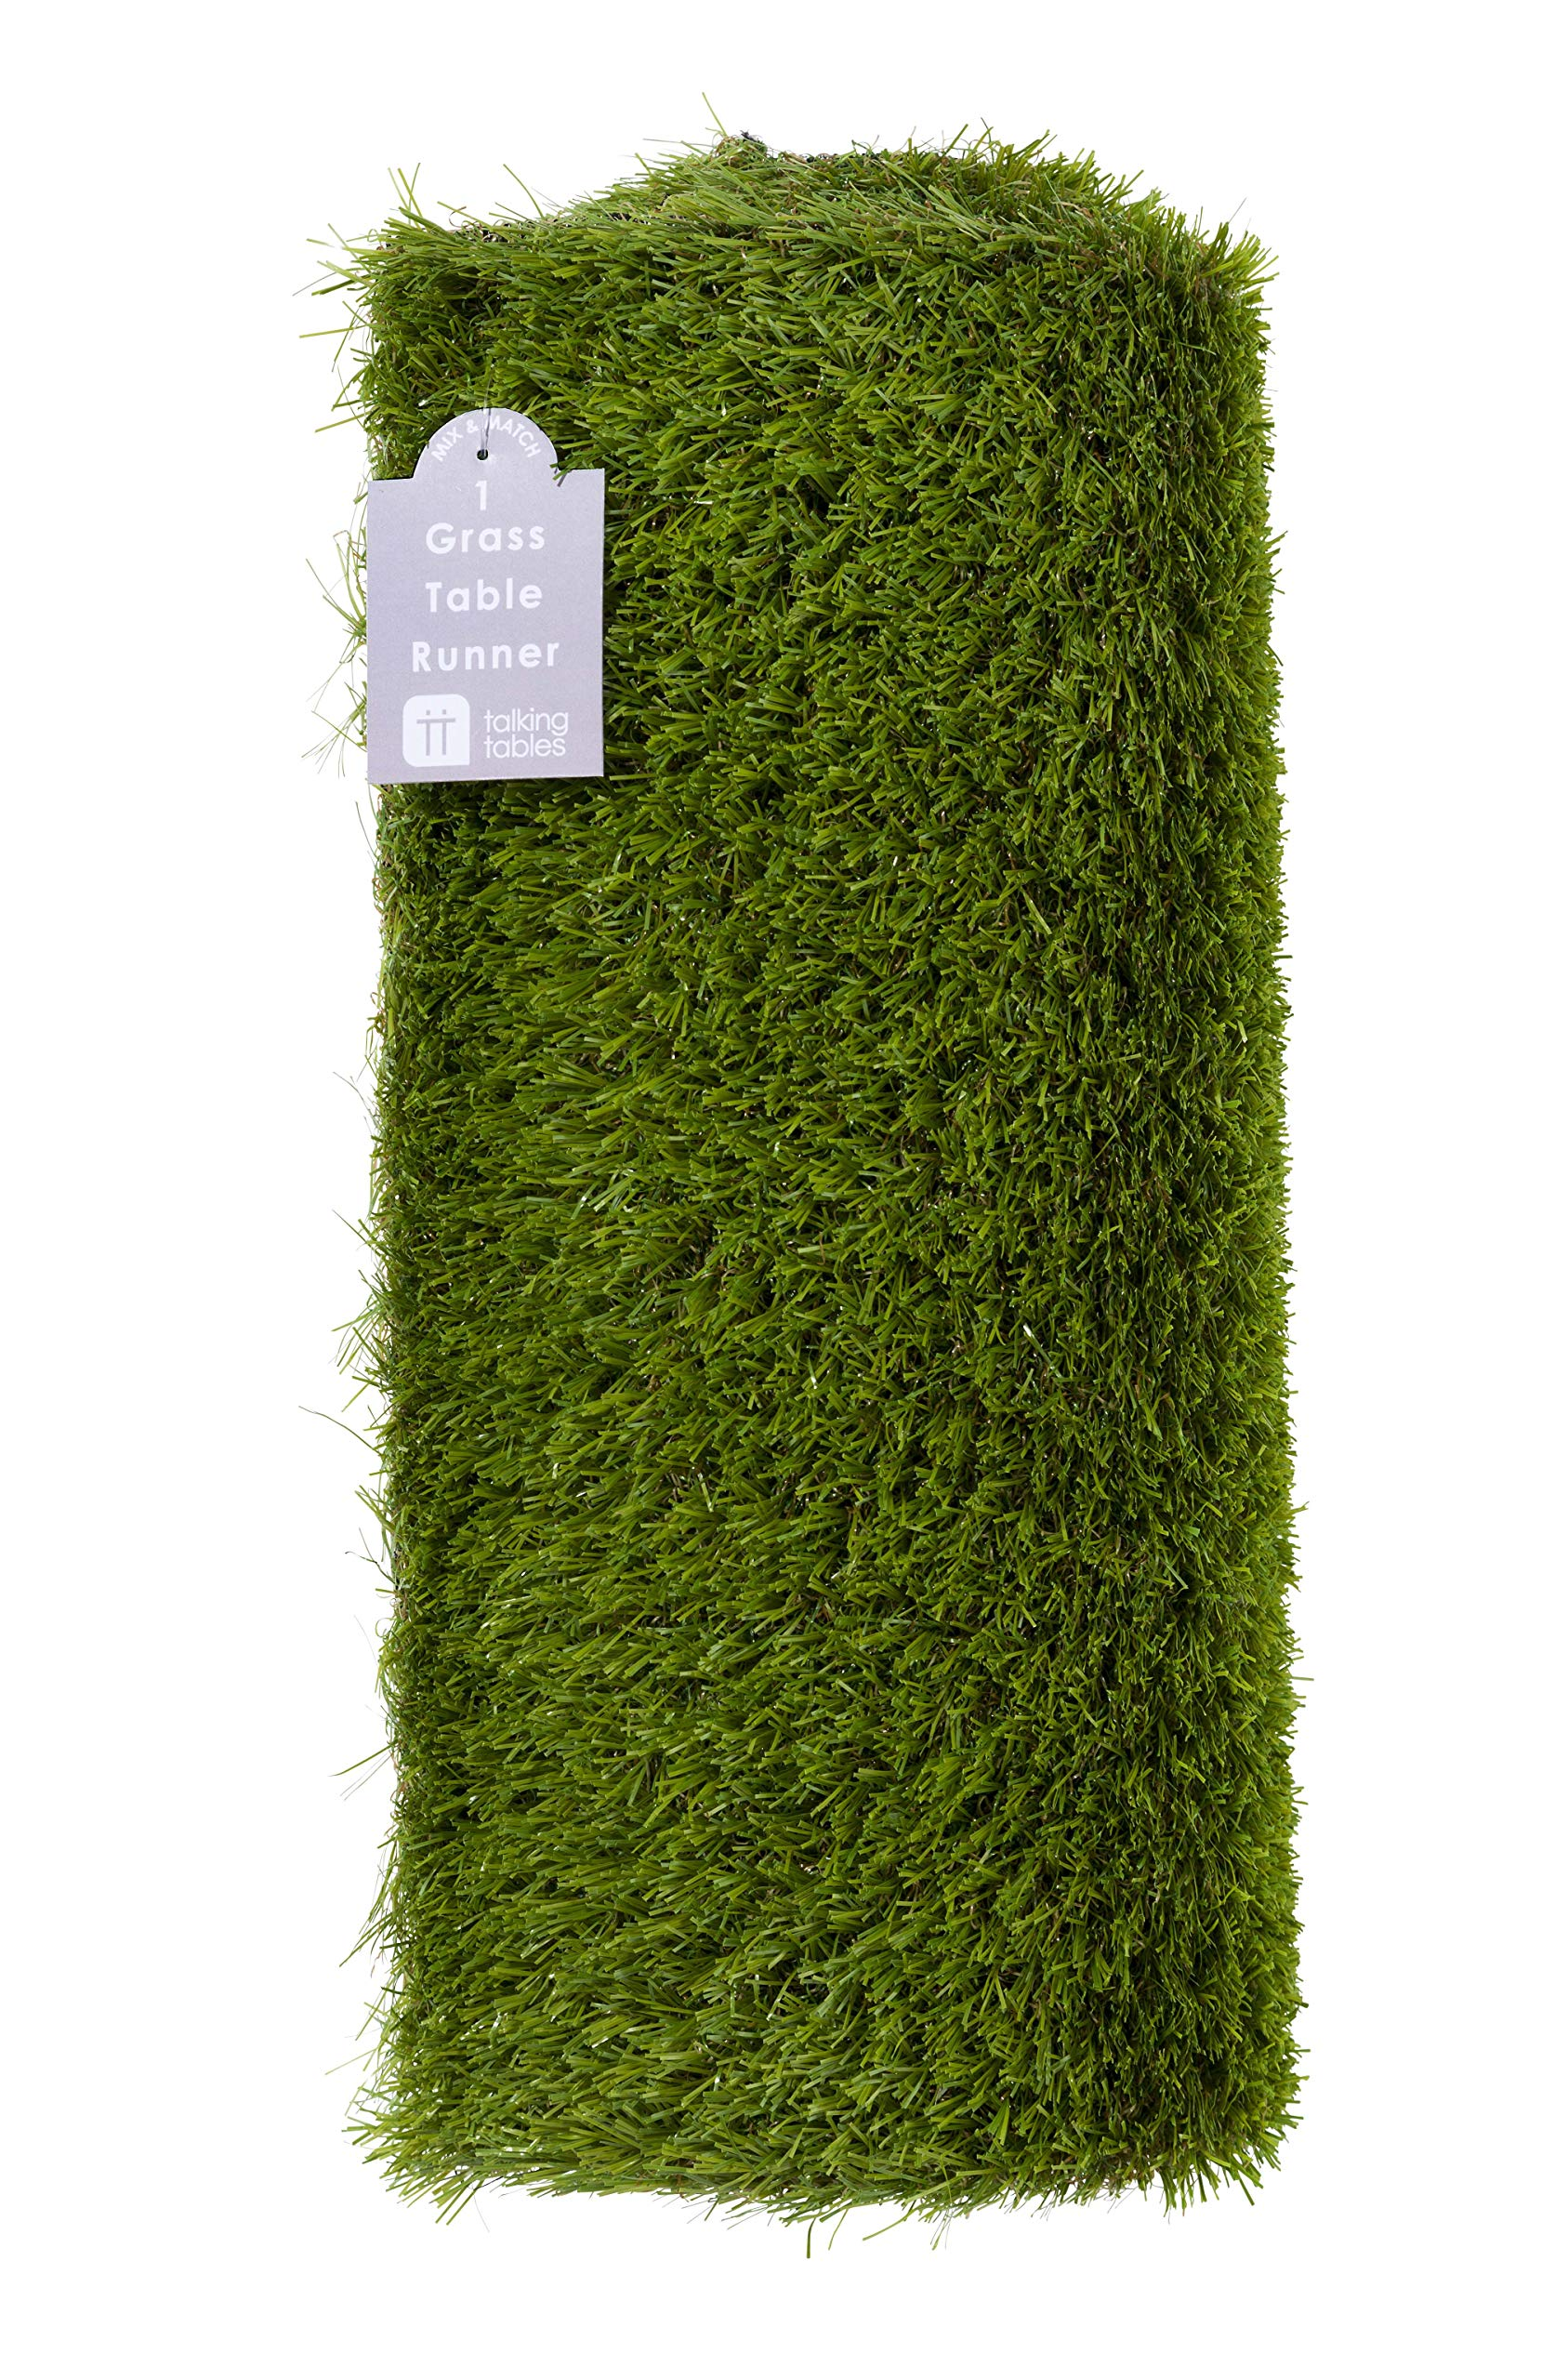 Talking Tables MIX-GRASSRUNNER Artificial Grass Runner Party Table Decoration, Length 1.5M, 5ft, Green by Talking Tables